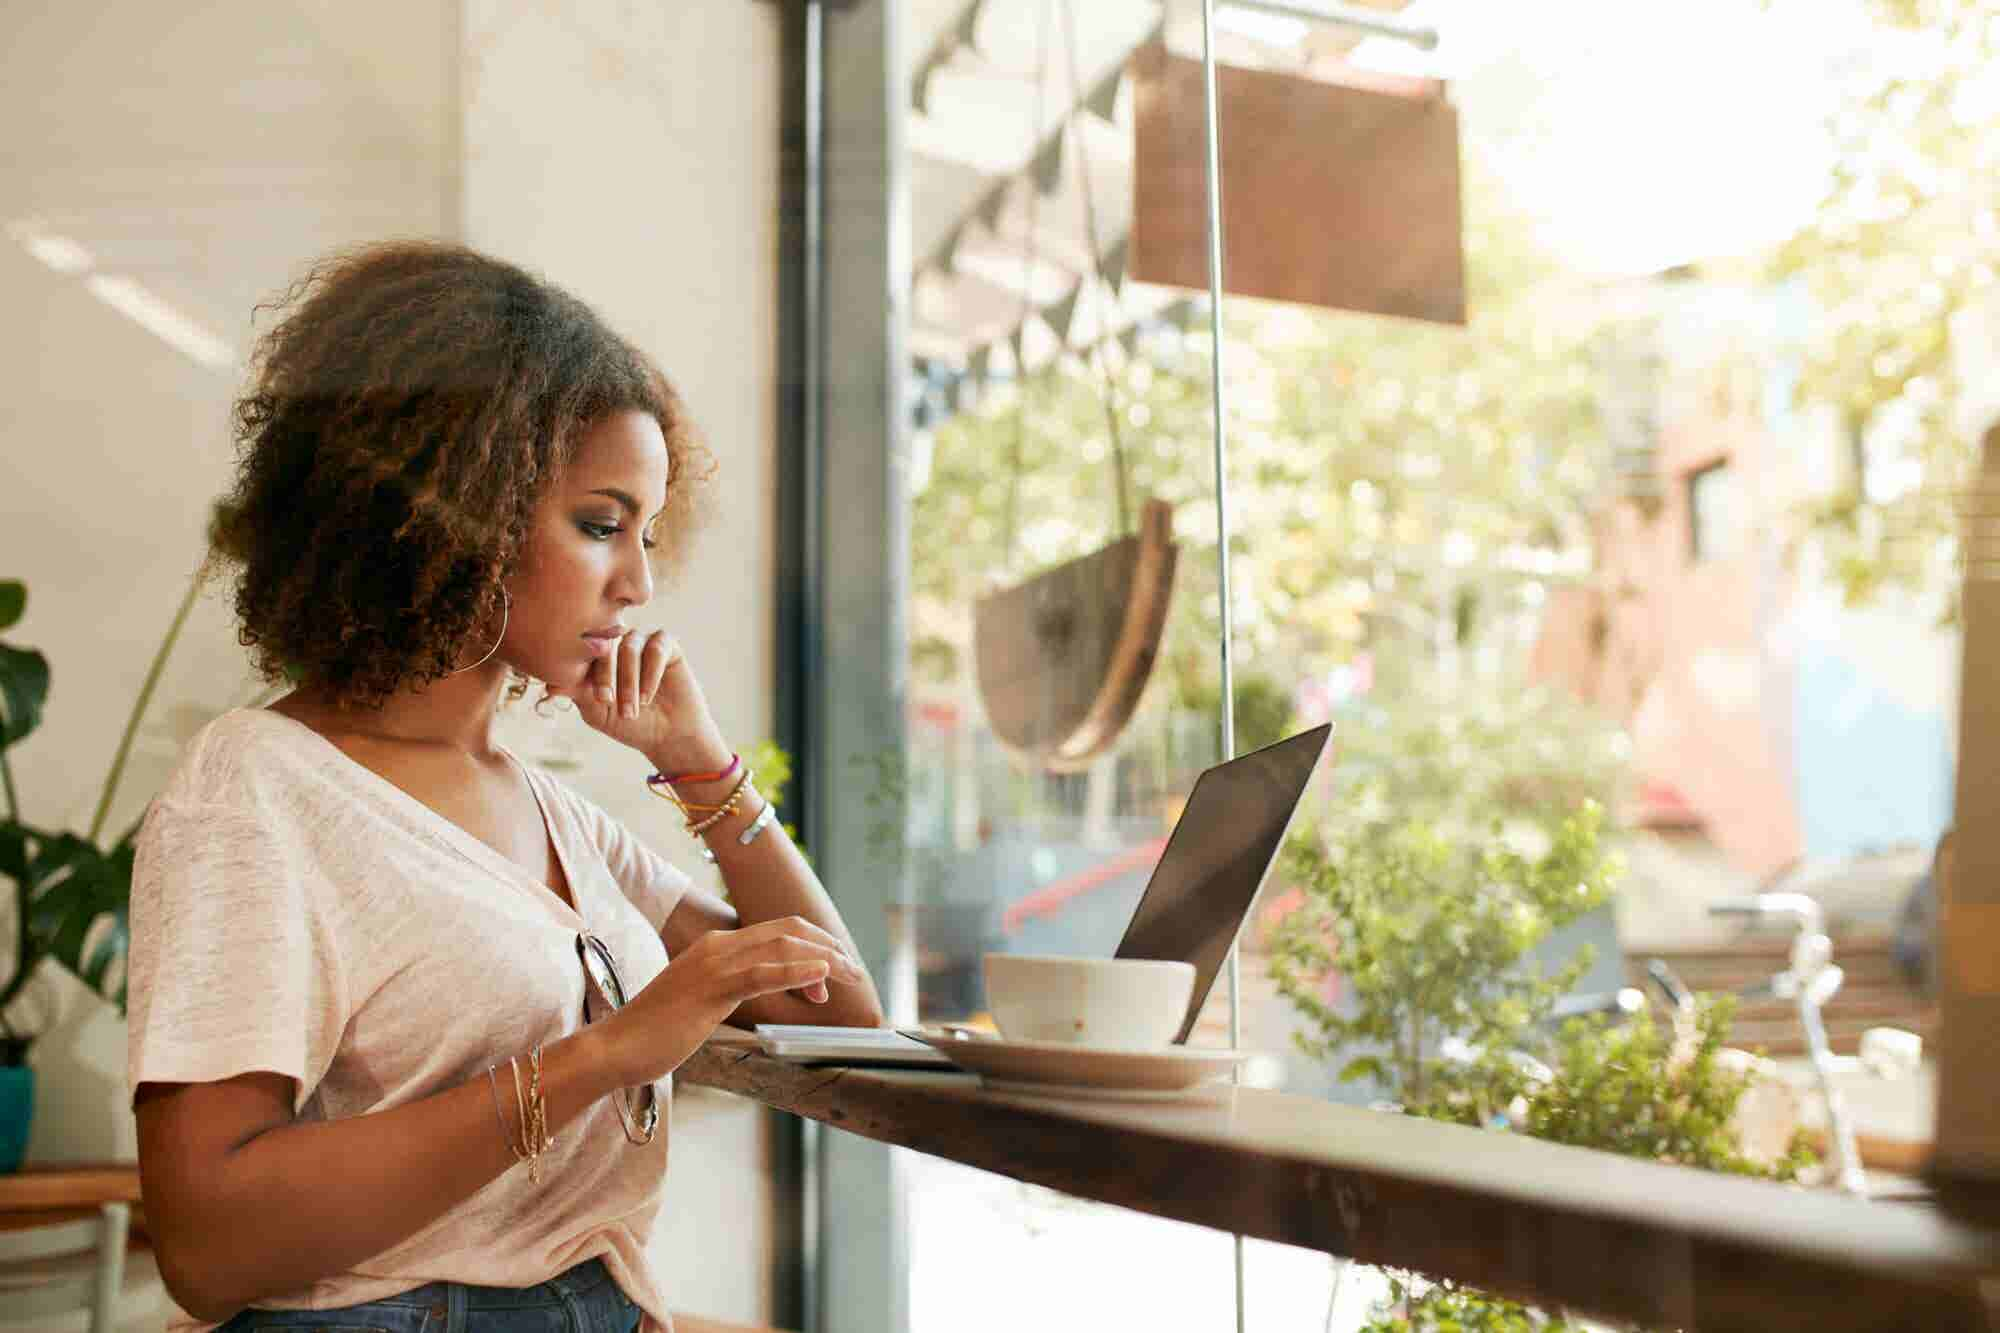 5 Signs Your Freelance Business Is Ready to Go Full-Time